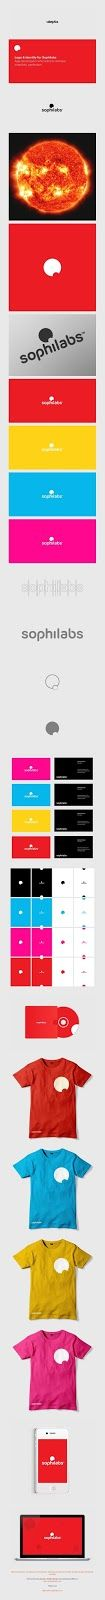 great pics: Sophilabs logo and corporate identity design by Utopia Branding Agency